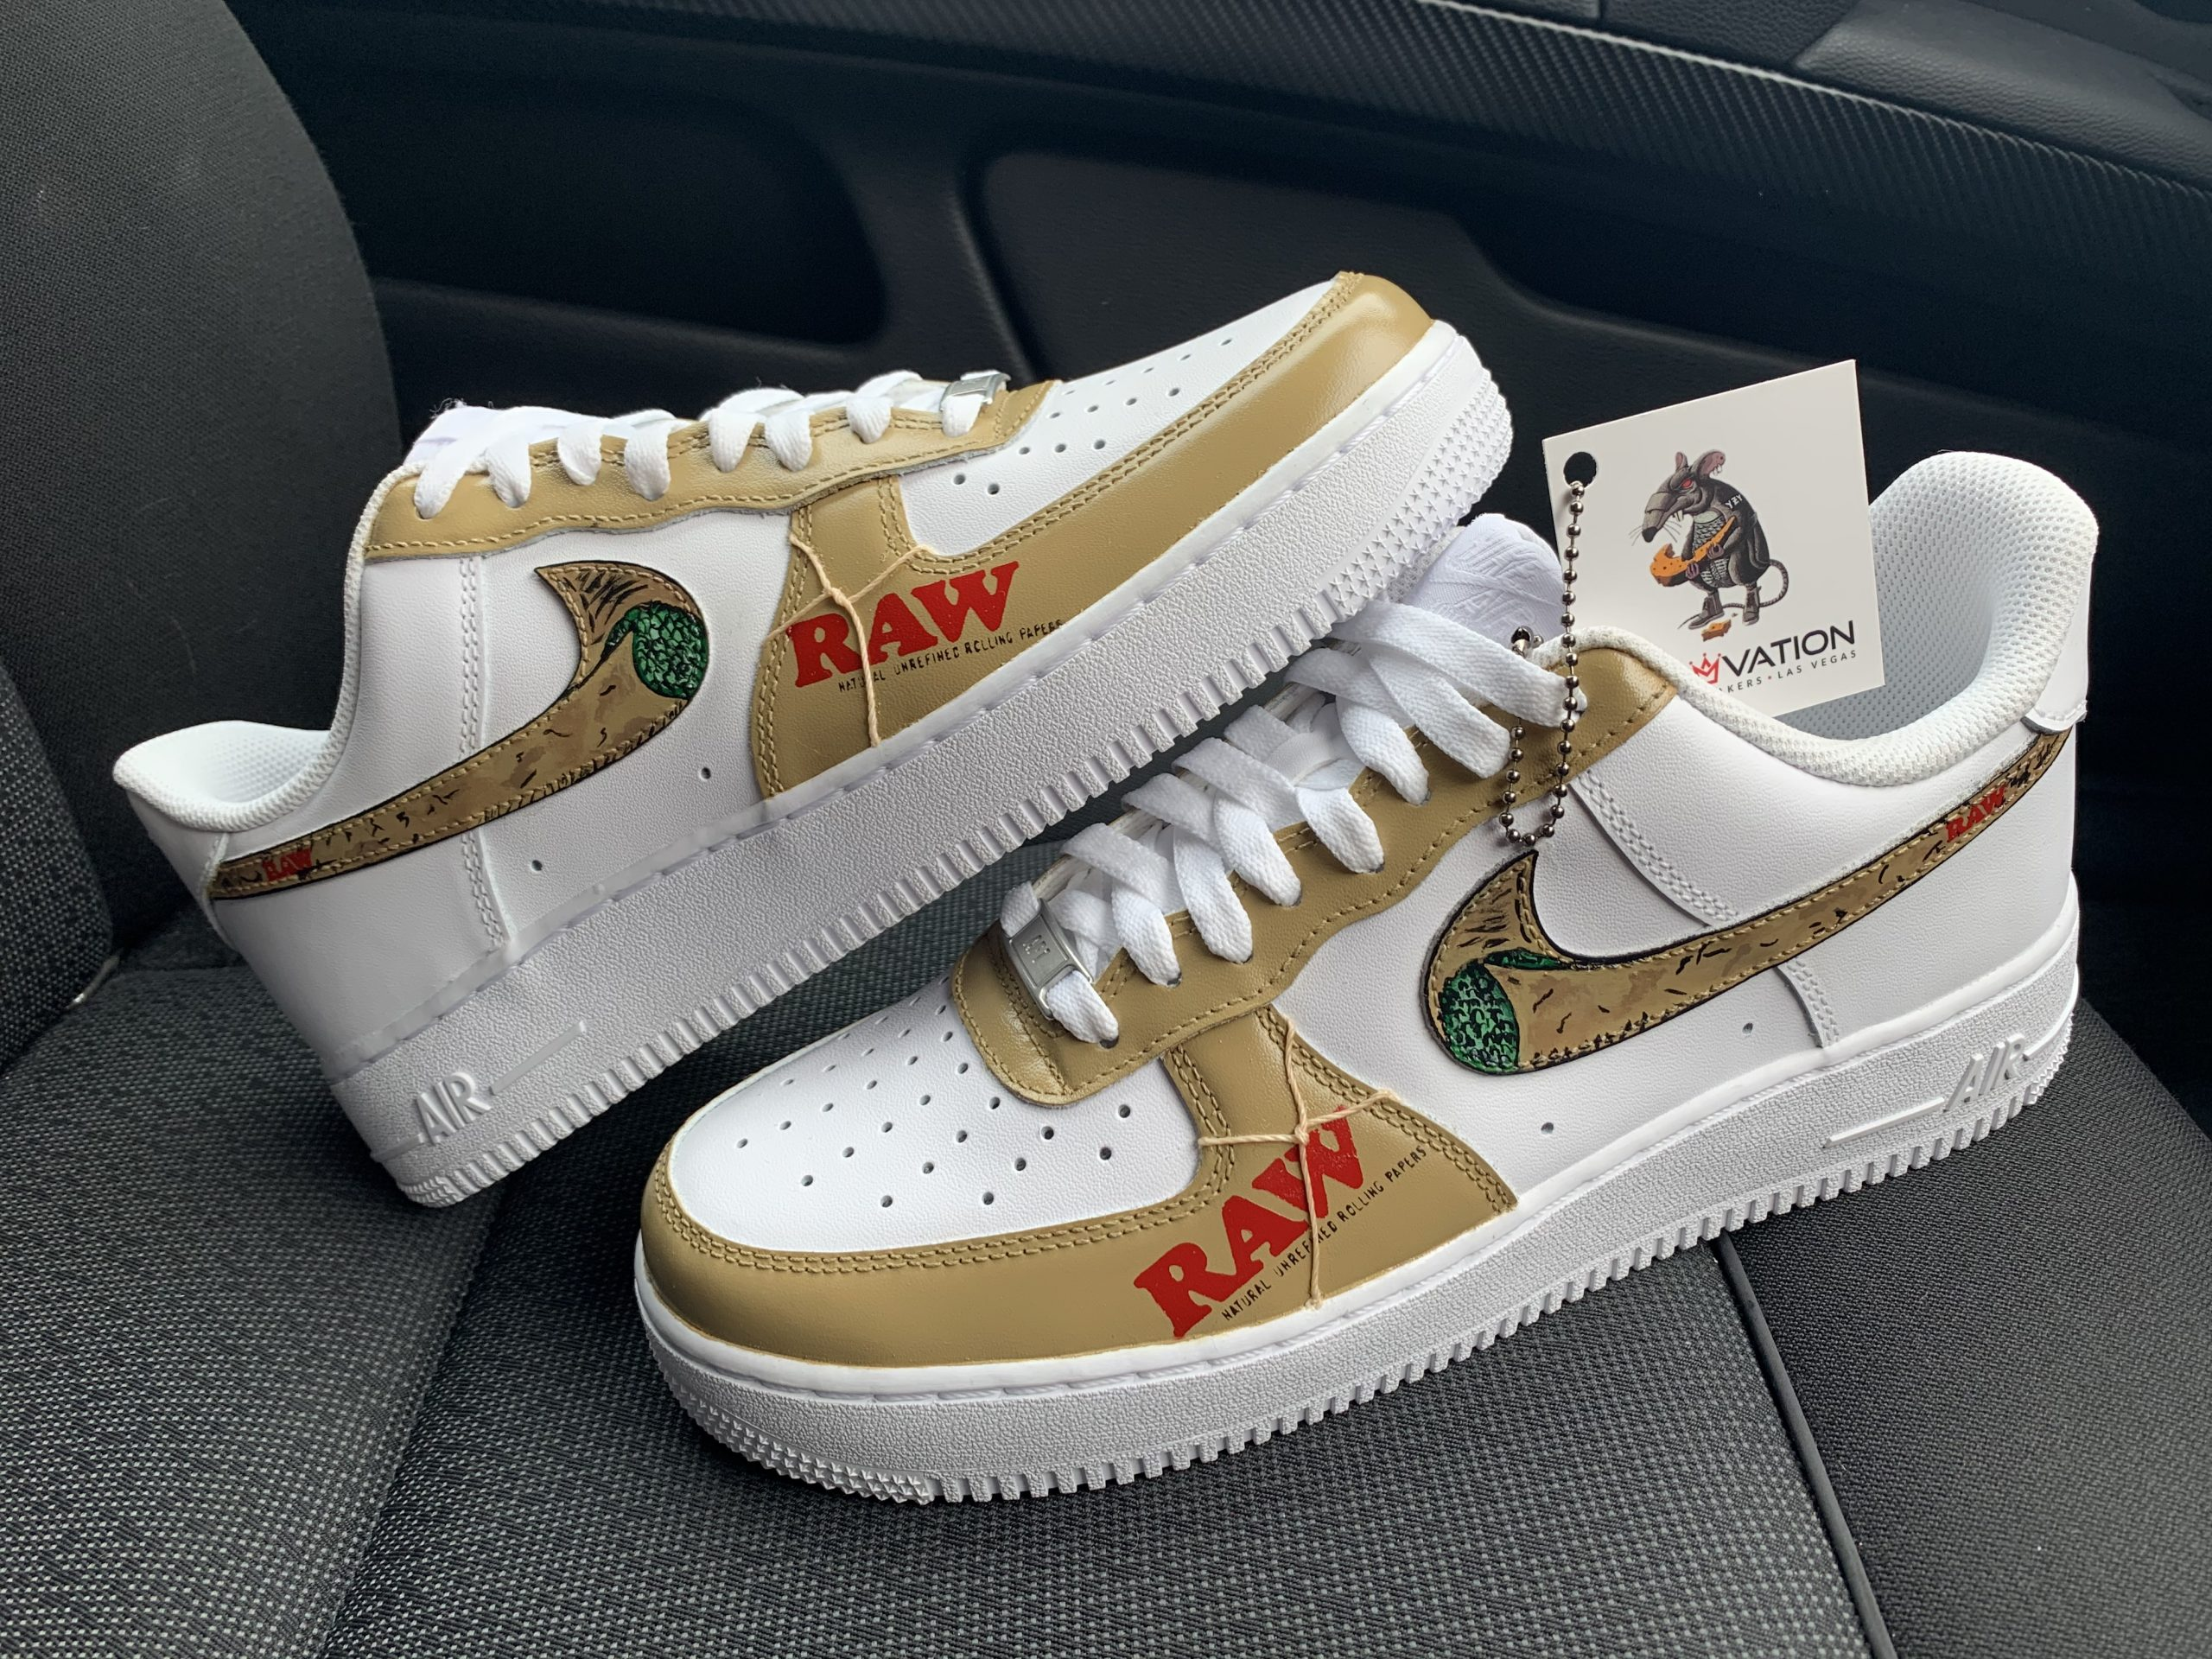 Custom Raw Air Force 1 Derivation Customs Custom Sneakers